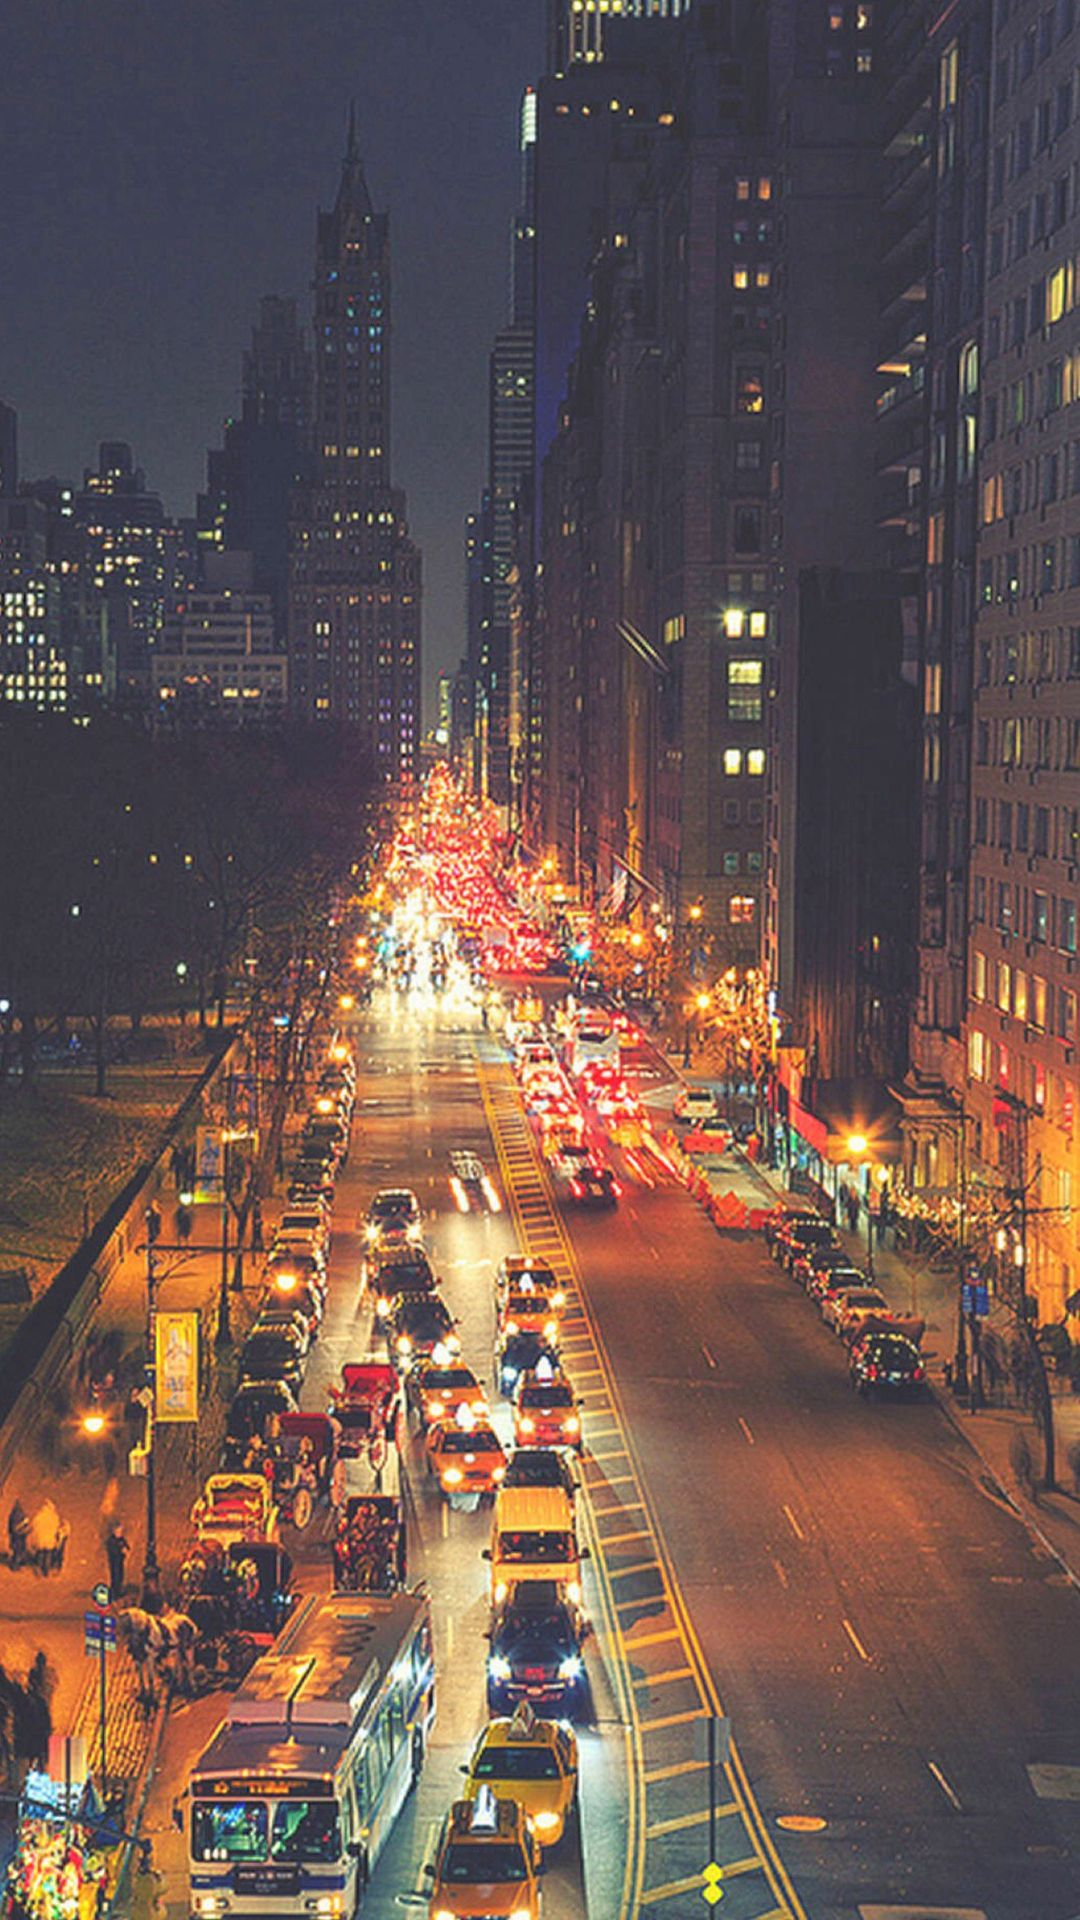 Busy New York Street Night Traffic Iphone 6 Wallpaper Download Iphone Wallpapers Ipad Wallpapers One Stop Download Beautiful Places Night City Night Life